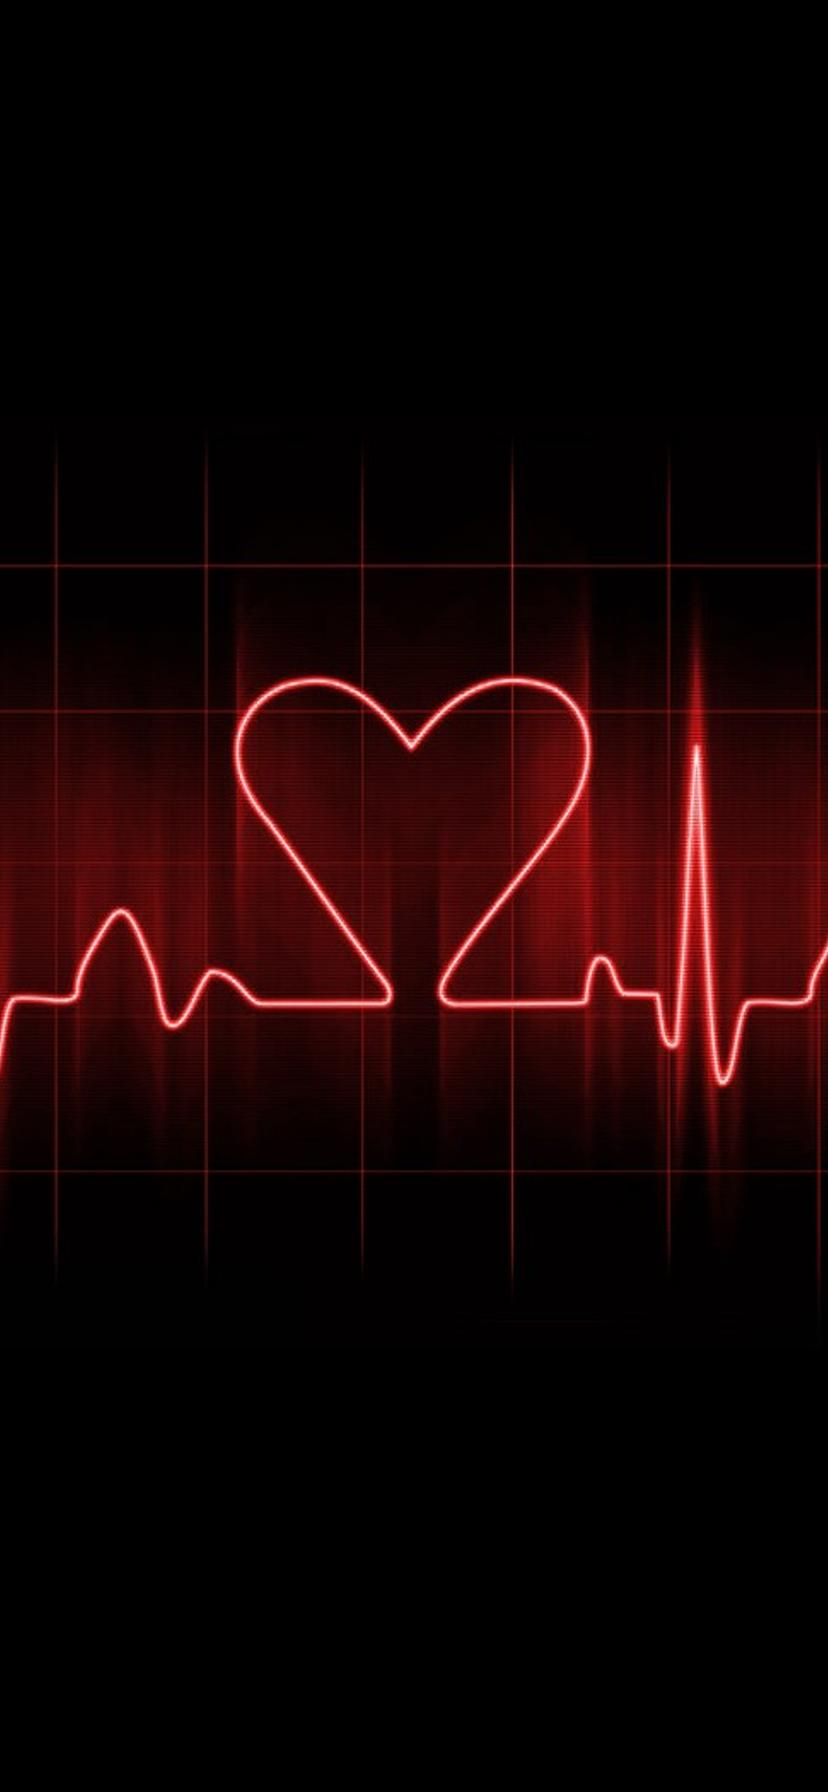 Heart Pulse On A Dark Background Love Wallpapers